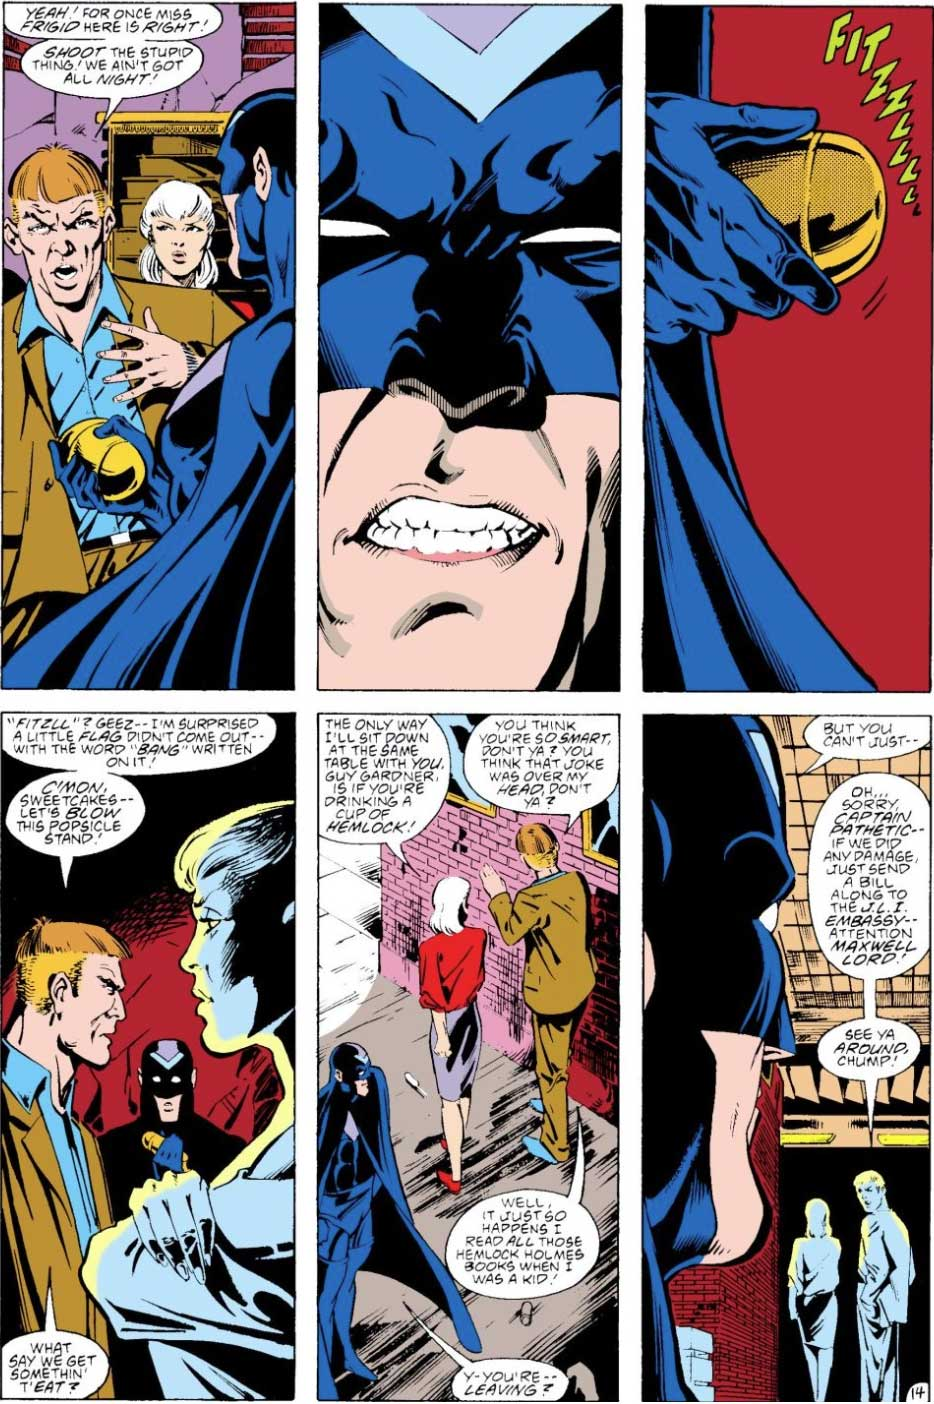 Justice League America #28 by Keith Giffen, J.M. DeMatteis, Ty Templeton, Mike McKone and Joe Rubinstein